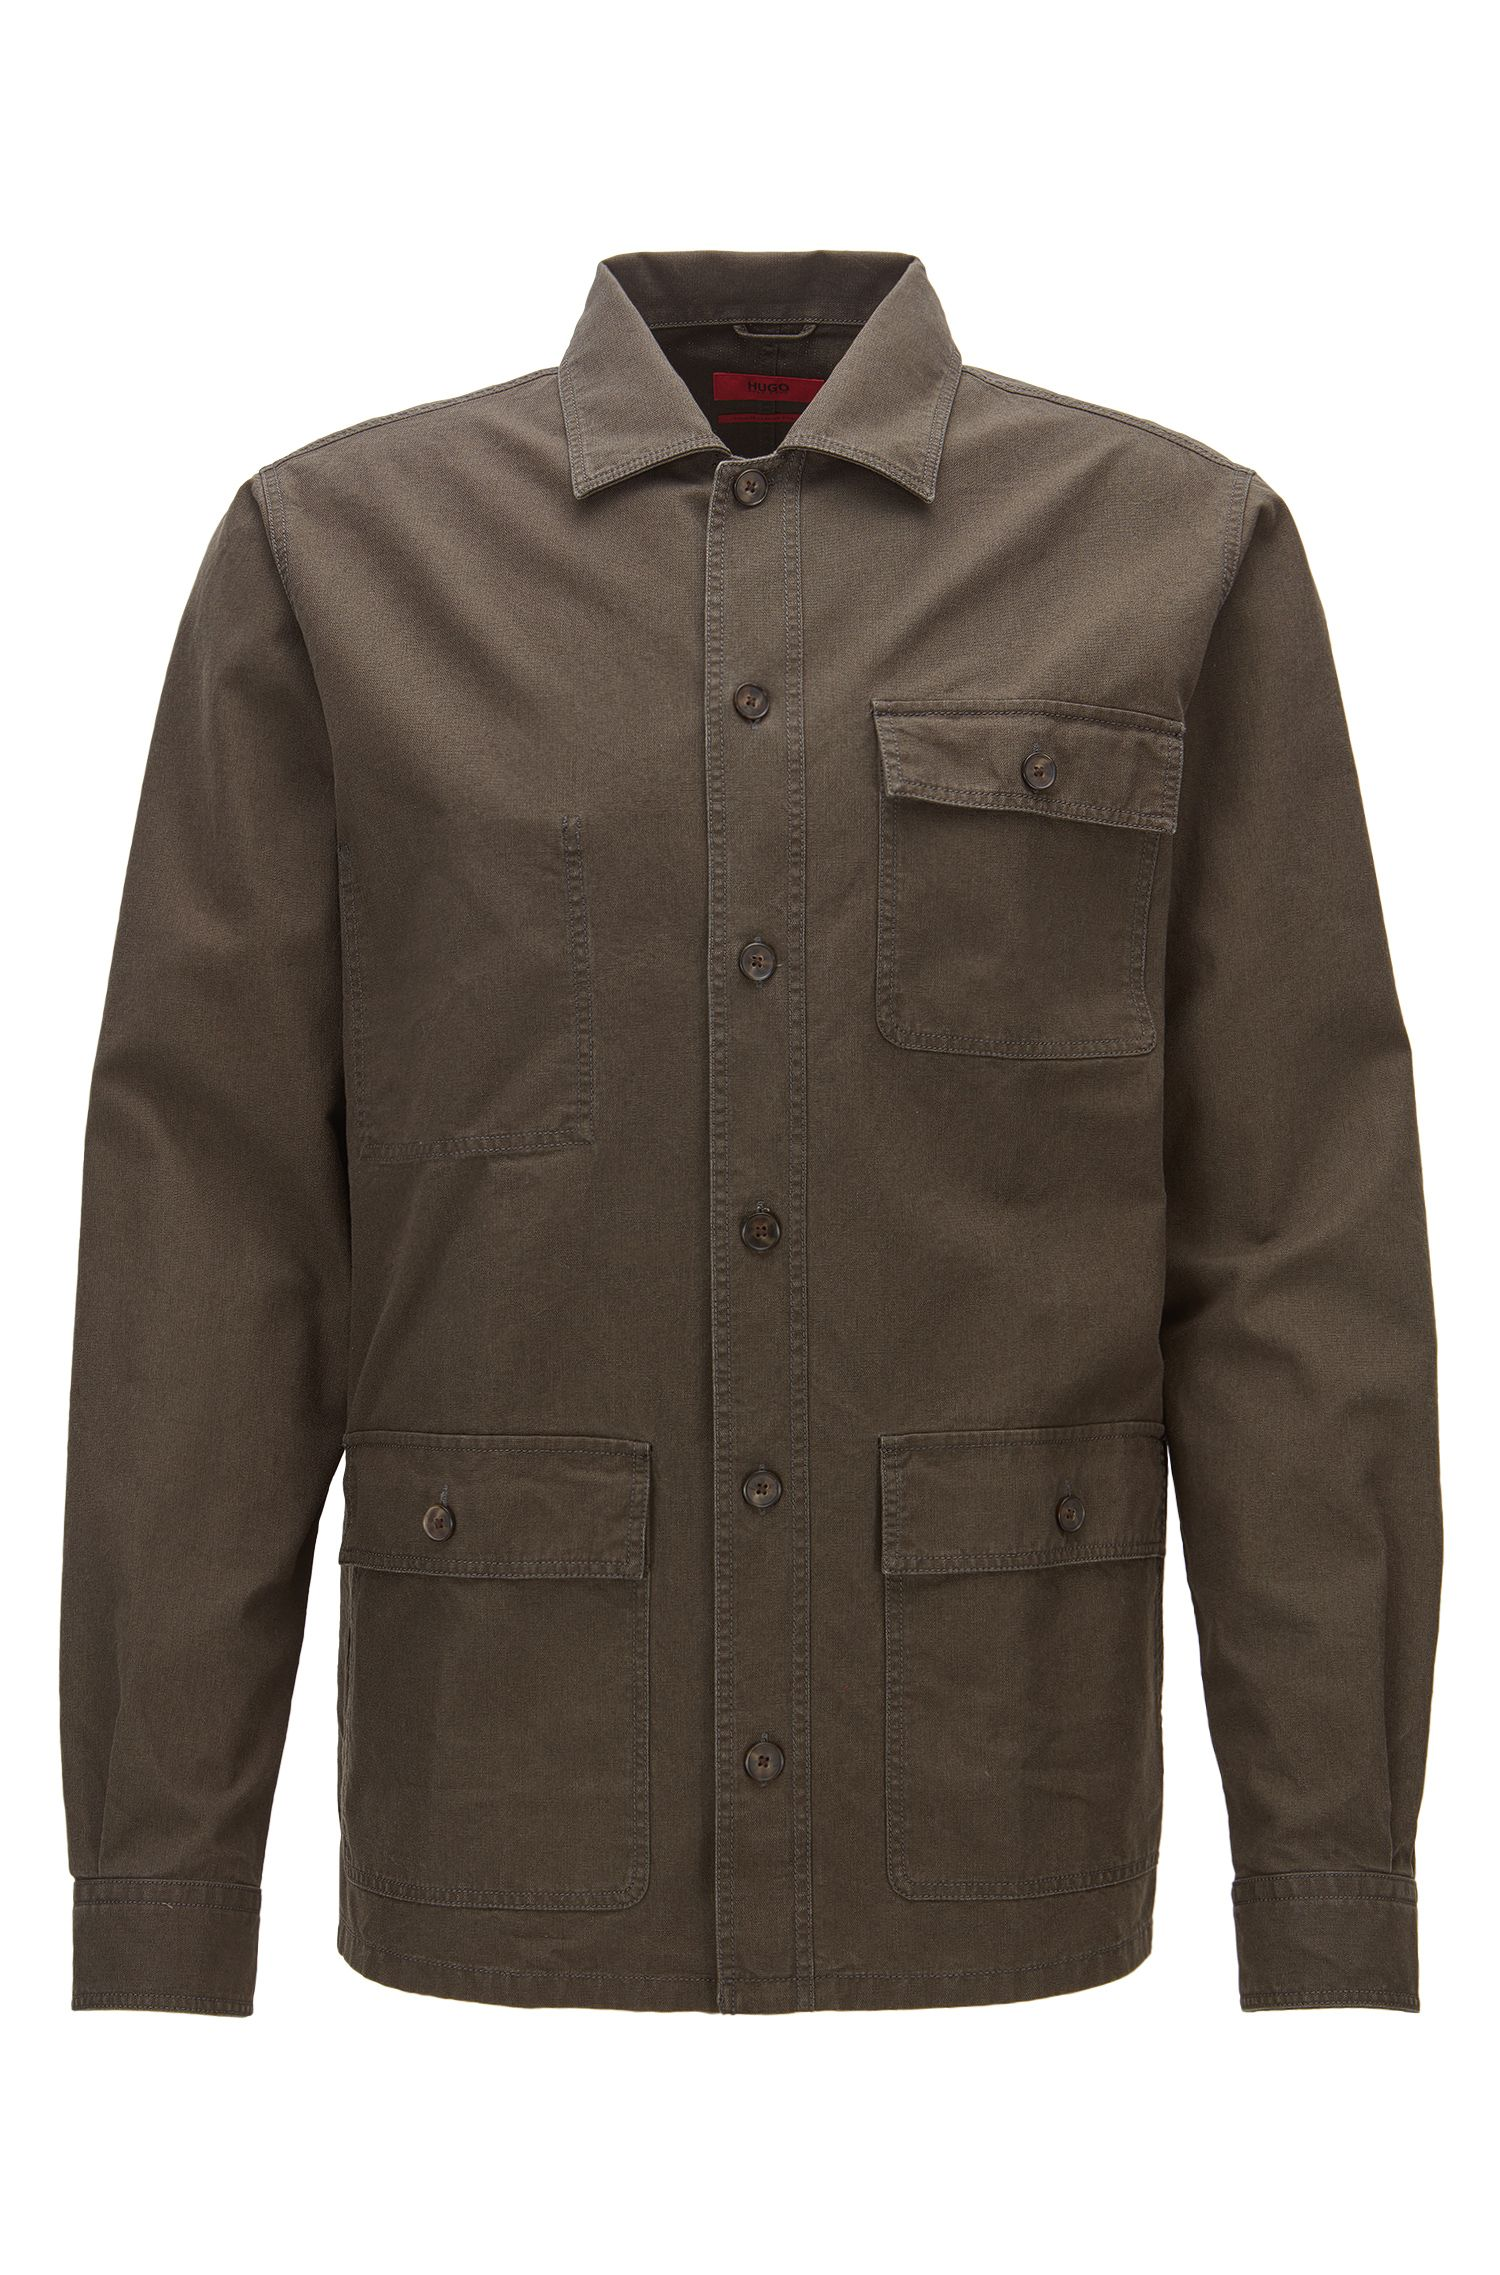 Relaxed-fit overshirt in heavyweight cotton